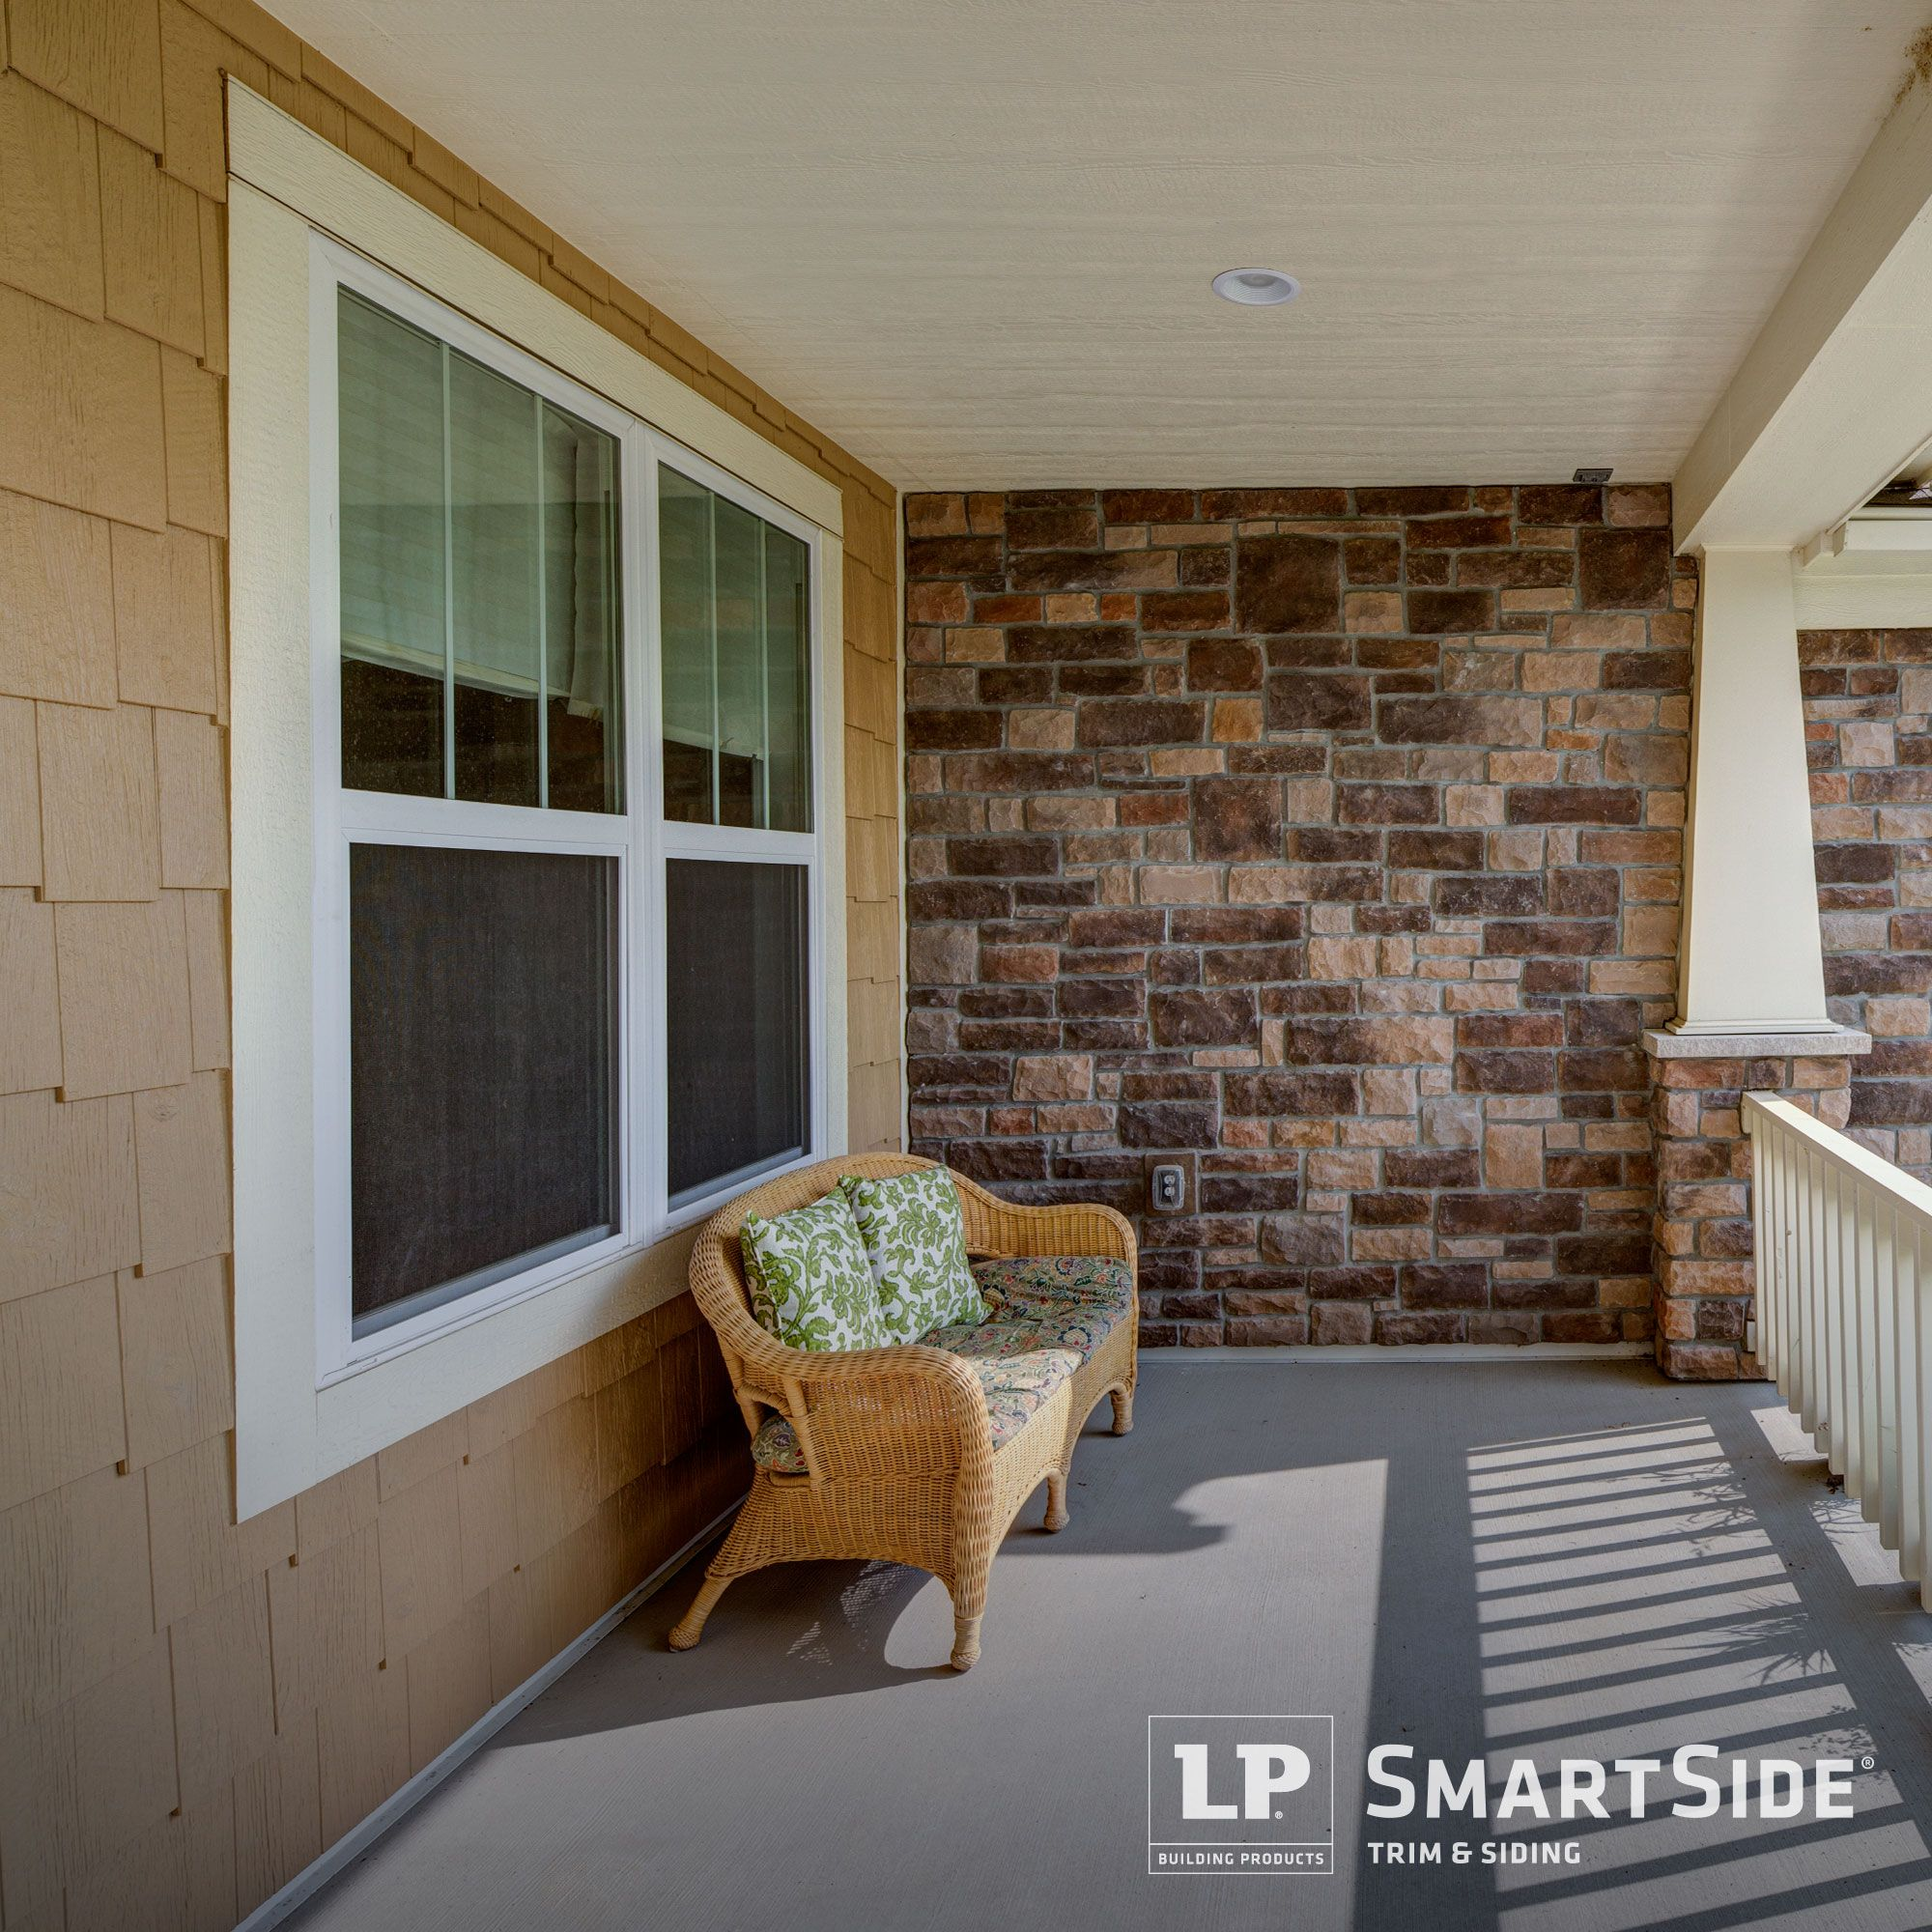 Neutral Colors Of Lp Smartside Cedar Shakes And Trim Complement The Stone Masonry Details On This Home S Op Engineered Wood Siding Siding Trim Wood Siding Trim